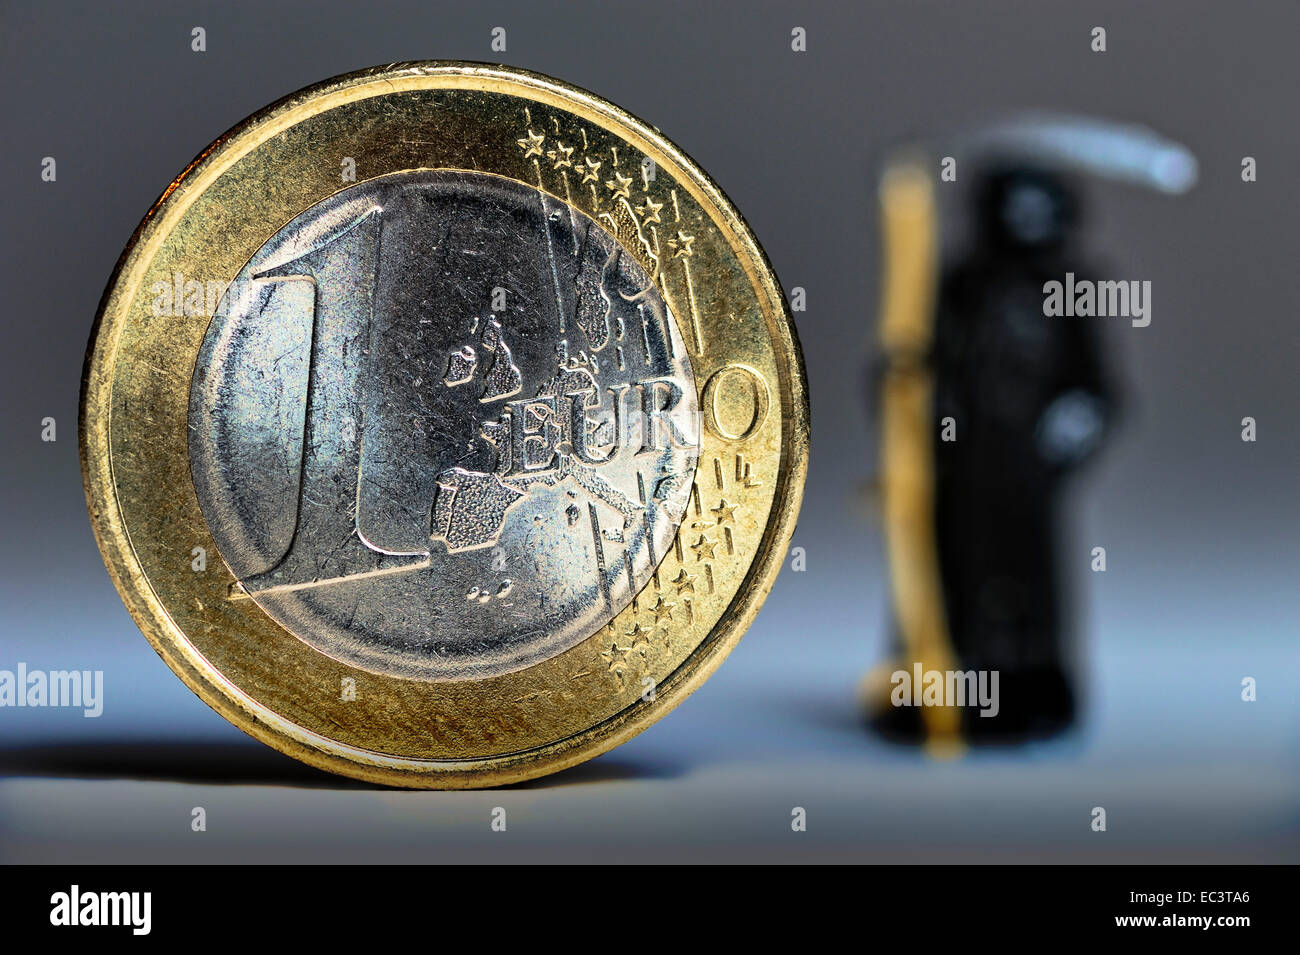 The Grim Reaper next to an euro coin, European debt crisis - Stock Image